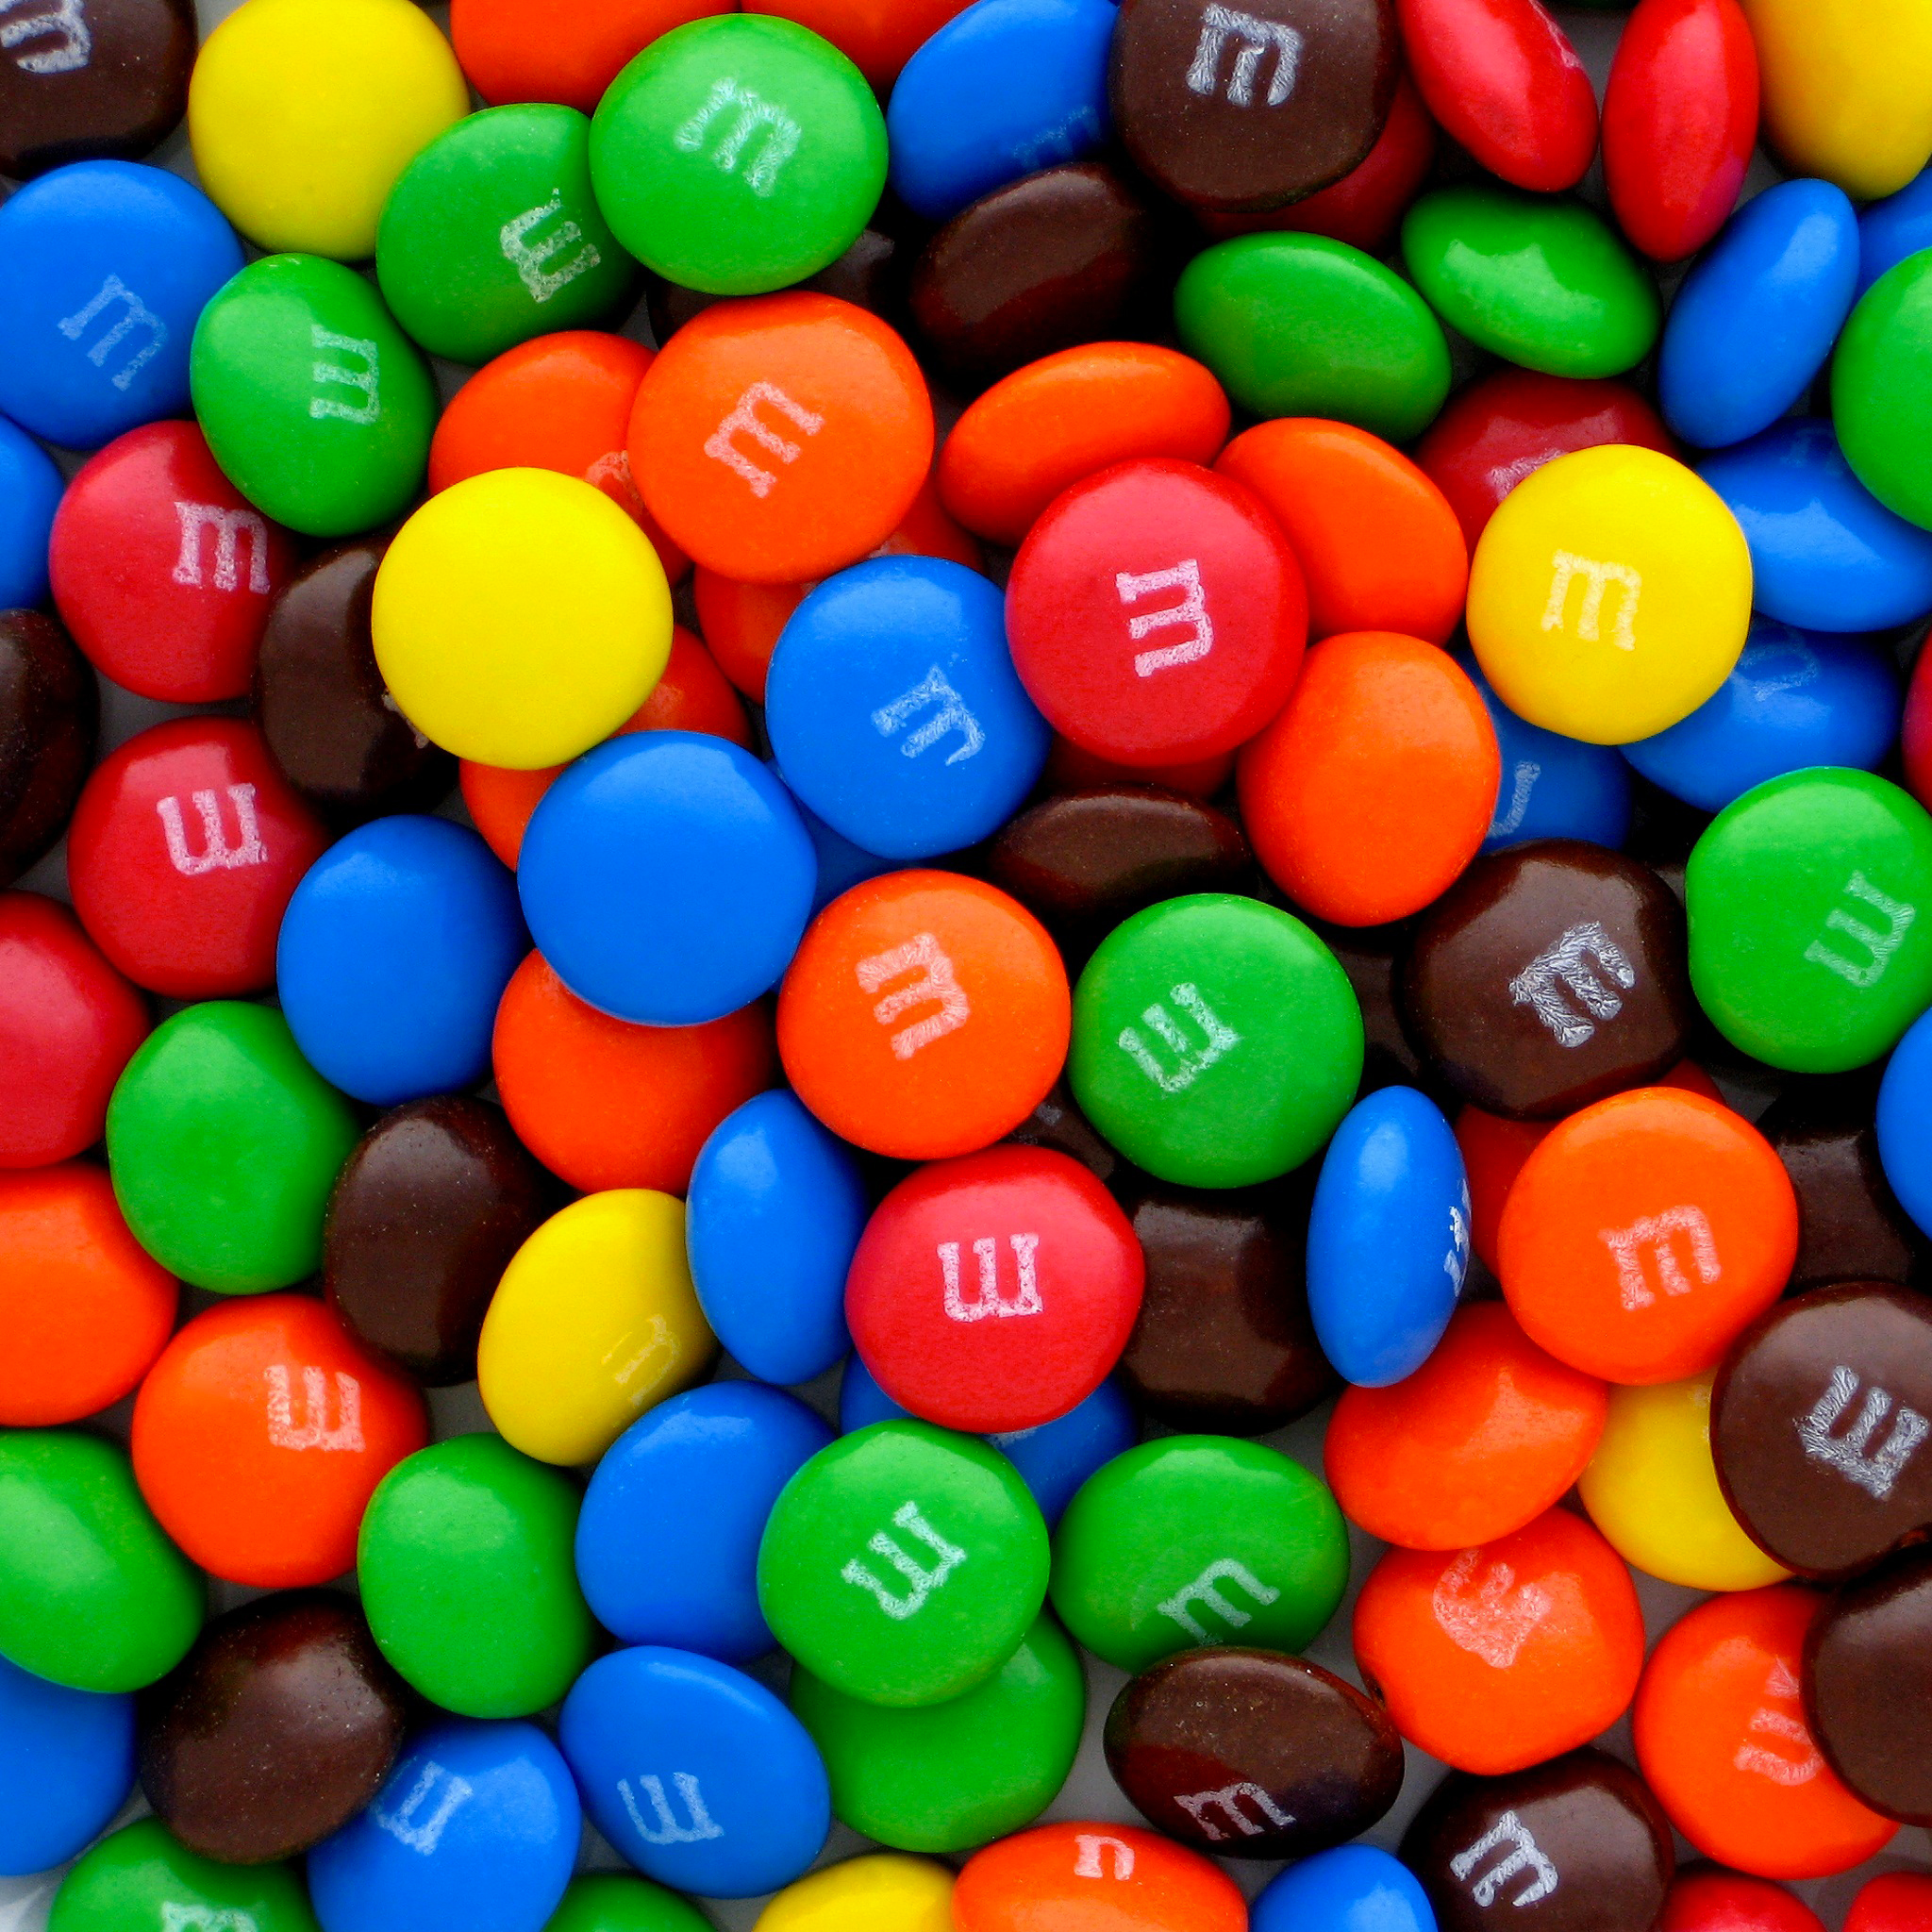 M&Ms-3Wallpapers-iPad-Retina